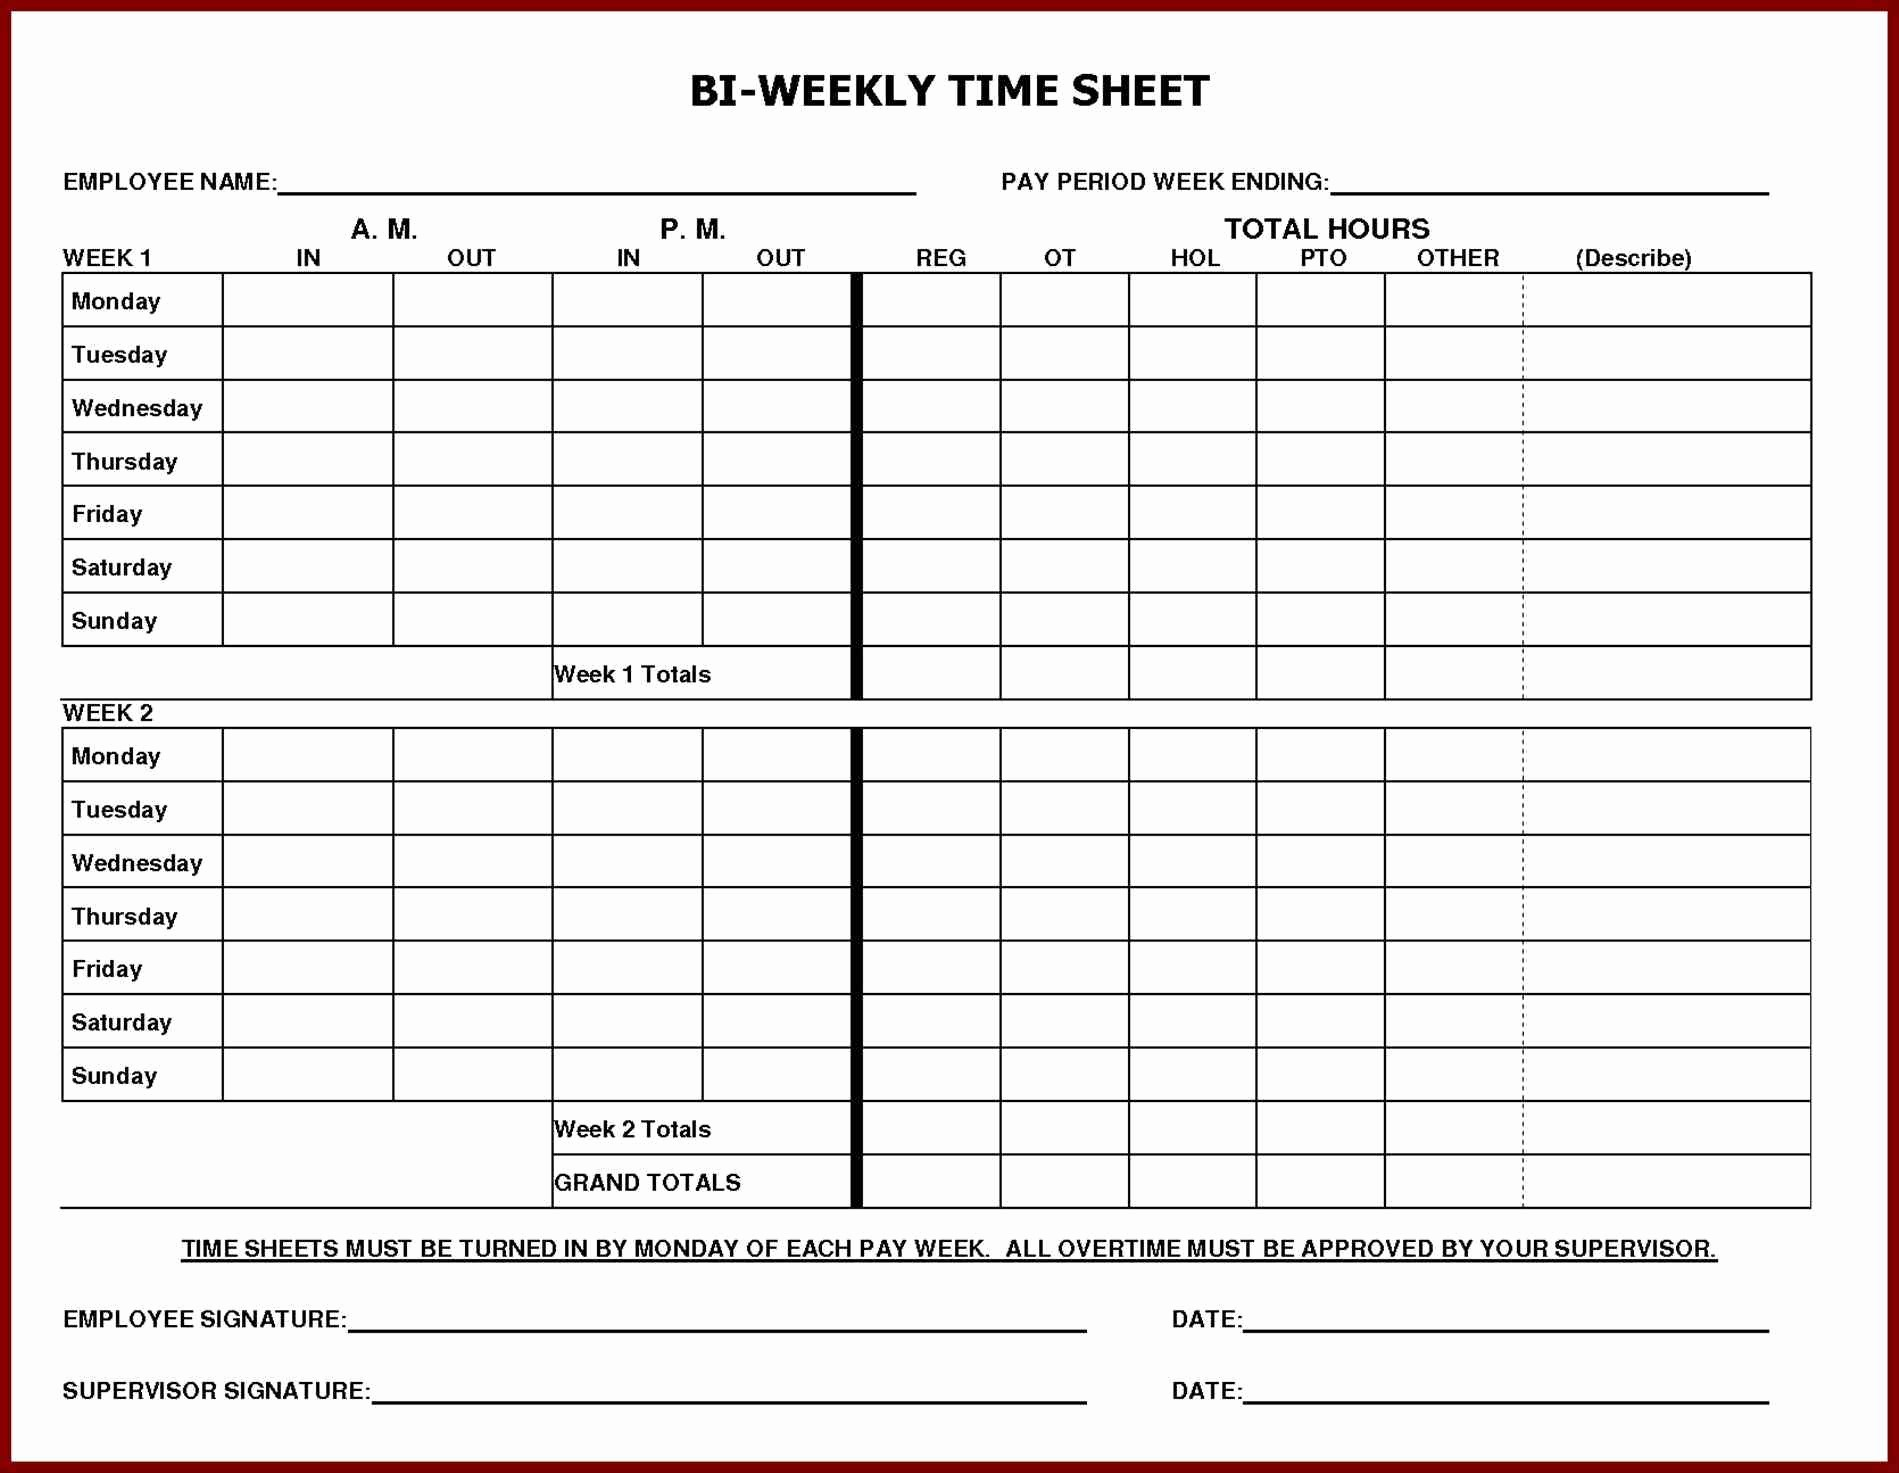 Clock In and Out Timesheet Fresh Daily Time Sheet Printable Printable 360 Degree